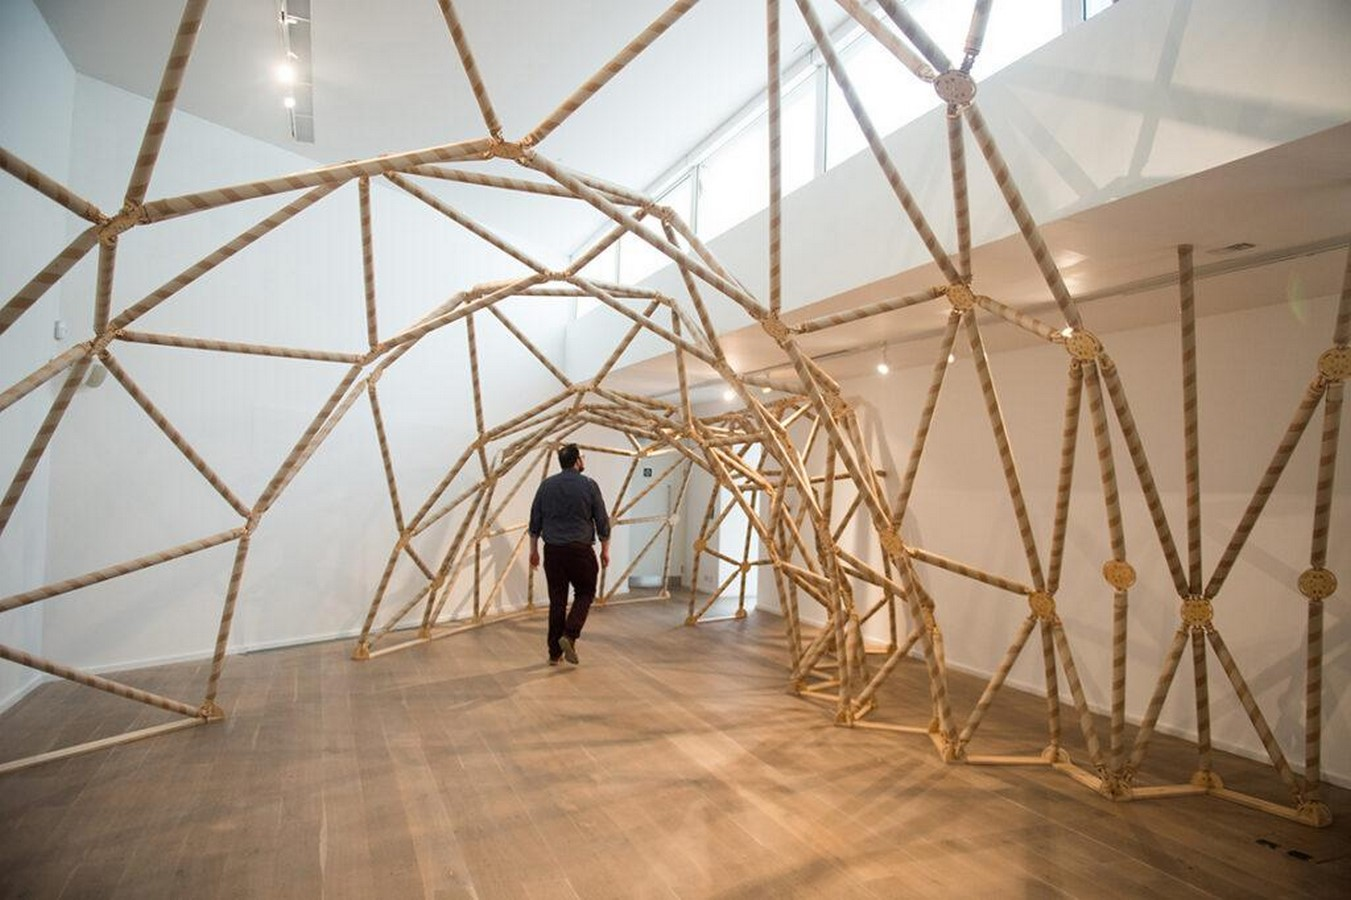 10 architectural exhibitions to look for in 2021 - Sheet4